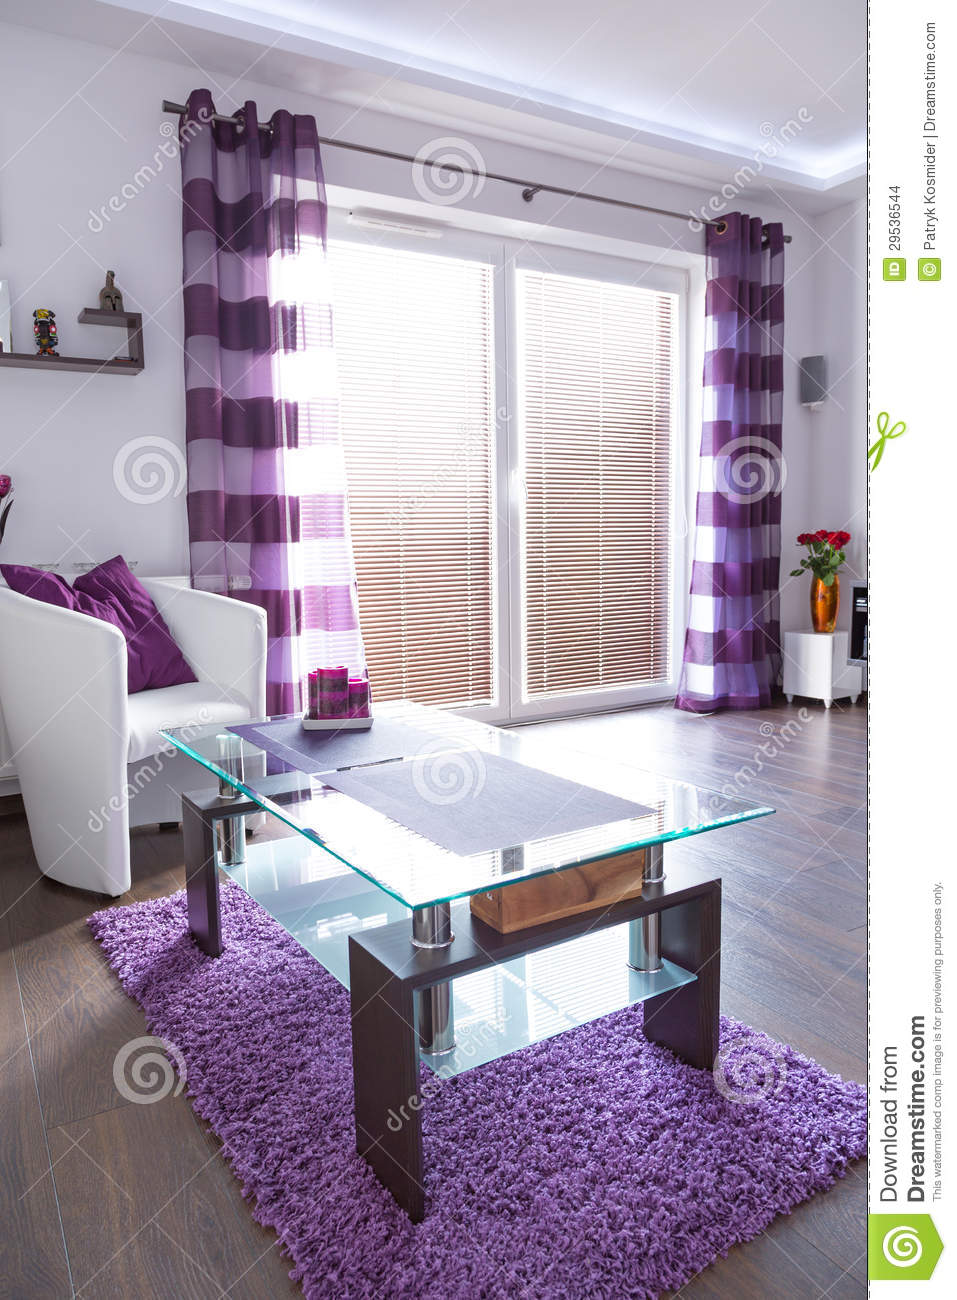 modern white and purple living room interior stock images - image